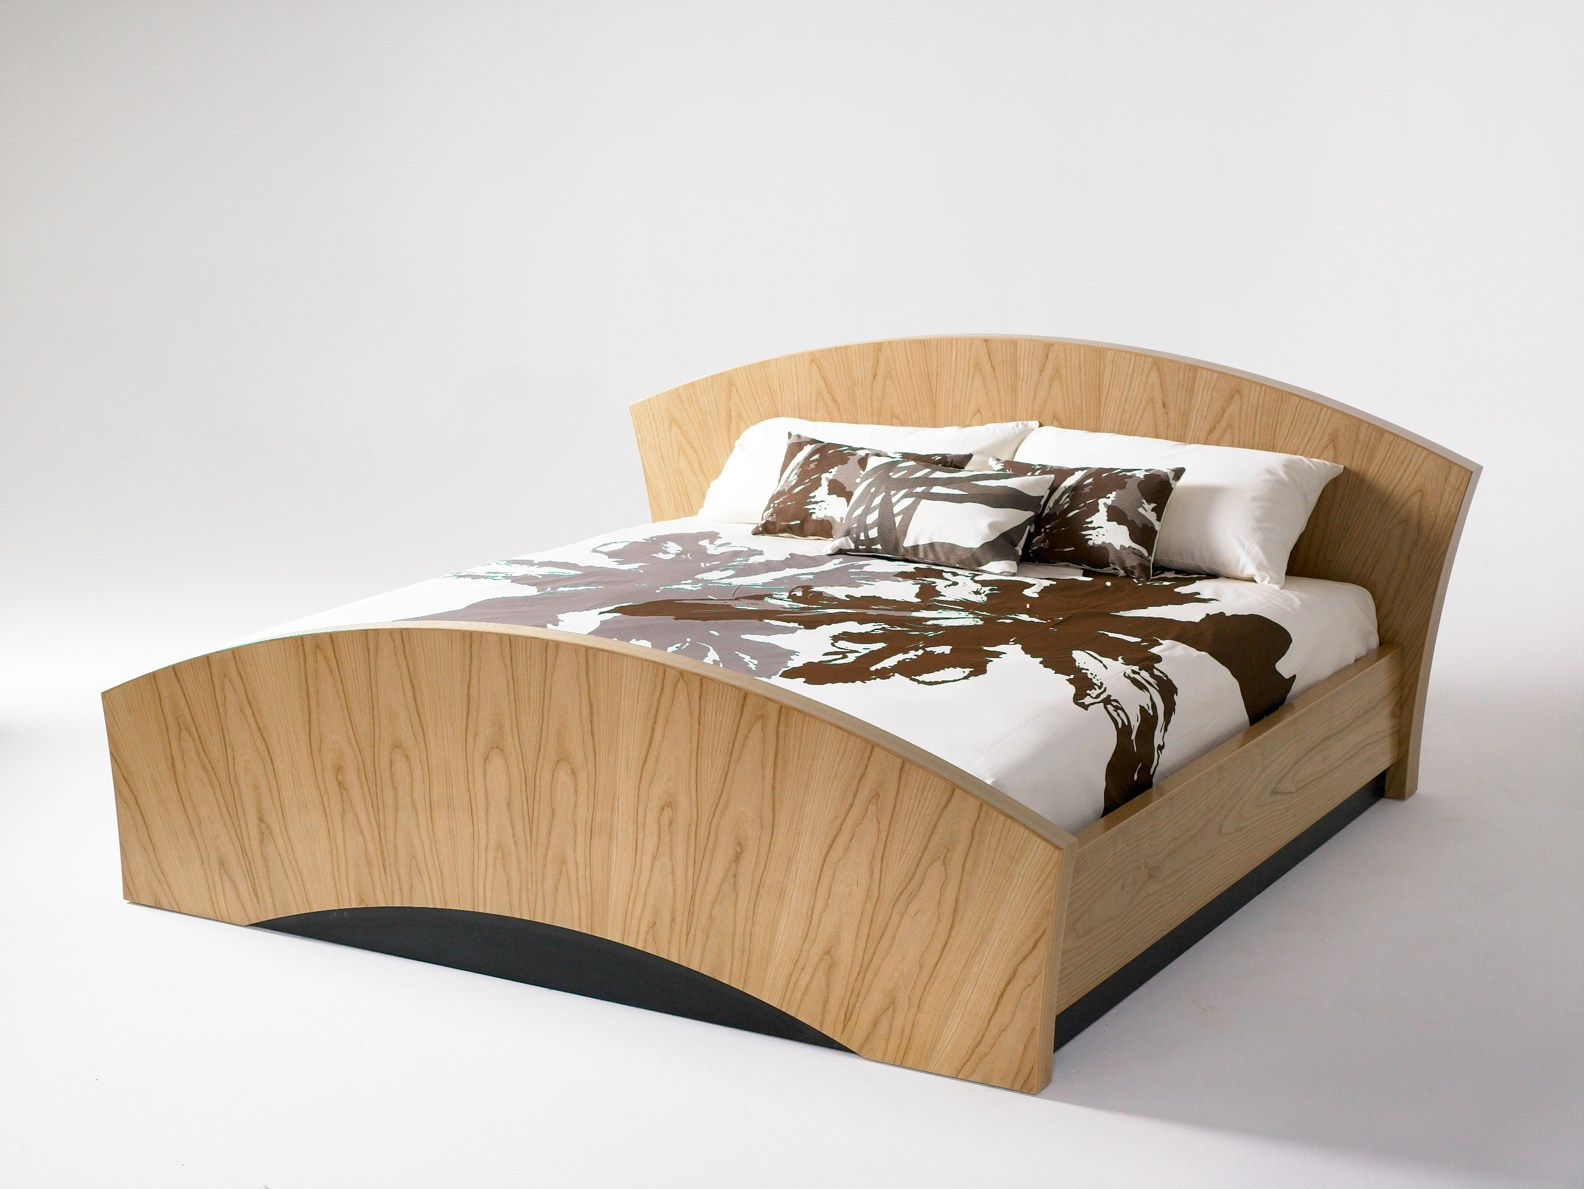 wood furniture design bed